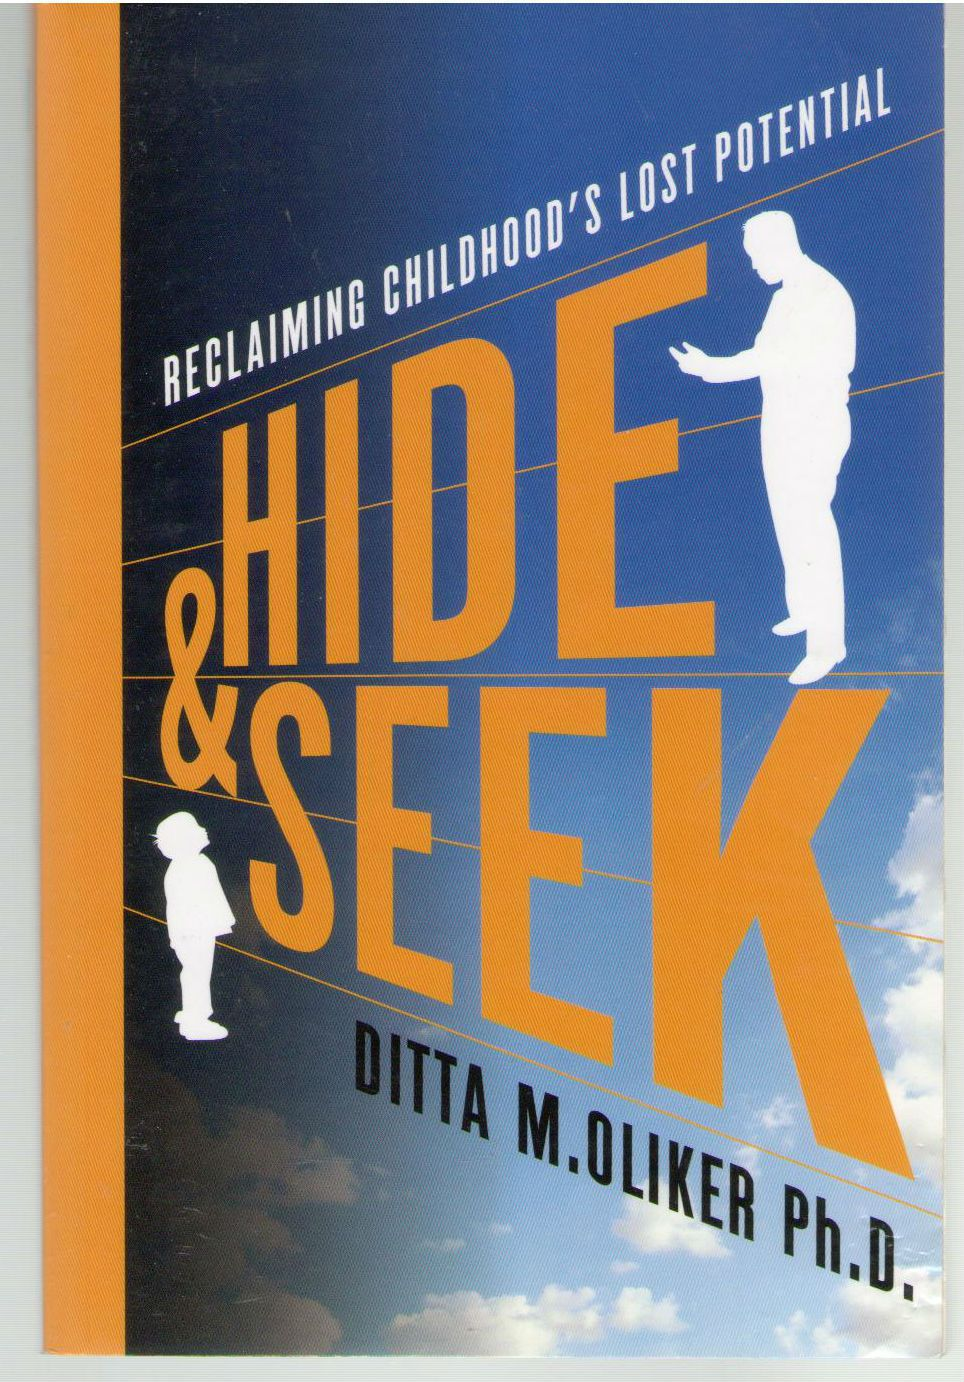 Hide and Seek: Reclaiming Childhood's Lost Potential, Oliker Ph.D., Ditta M.